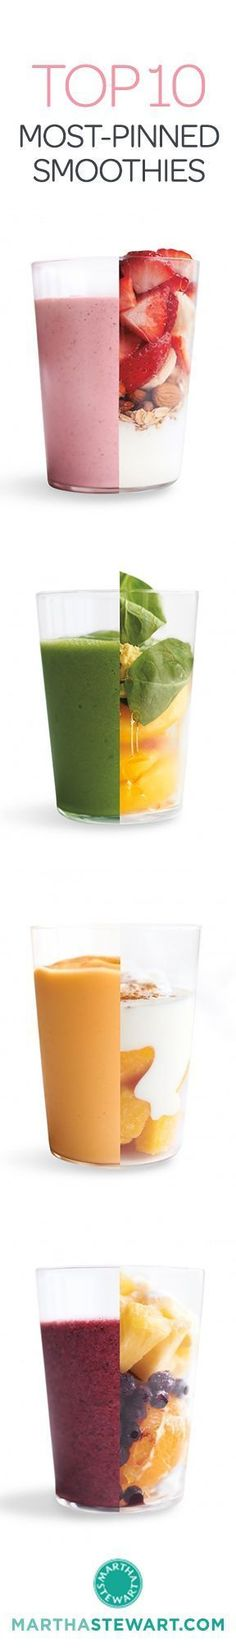 Top 10 most-pinned smoothies. A great on-the-go snack if you're looking to eat healthier this year!